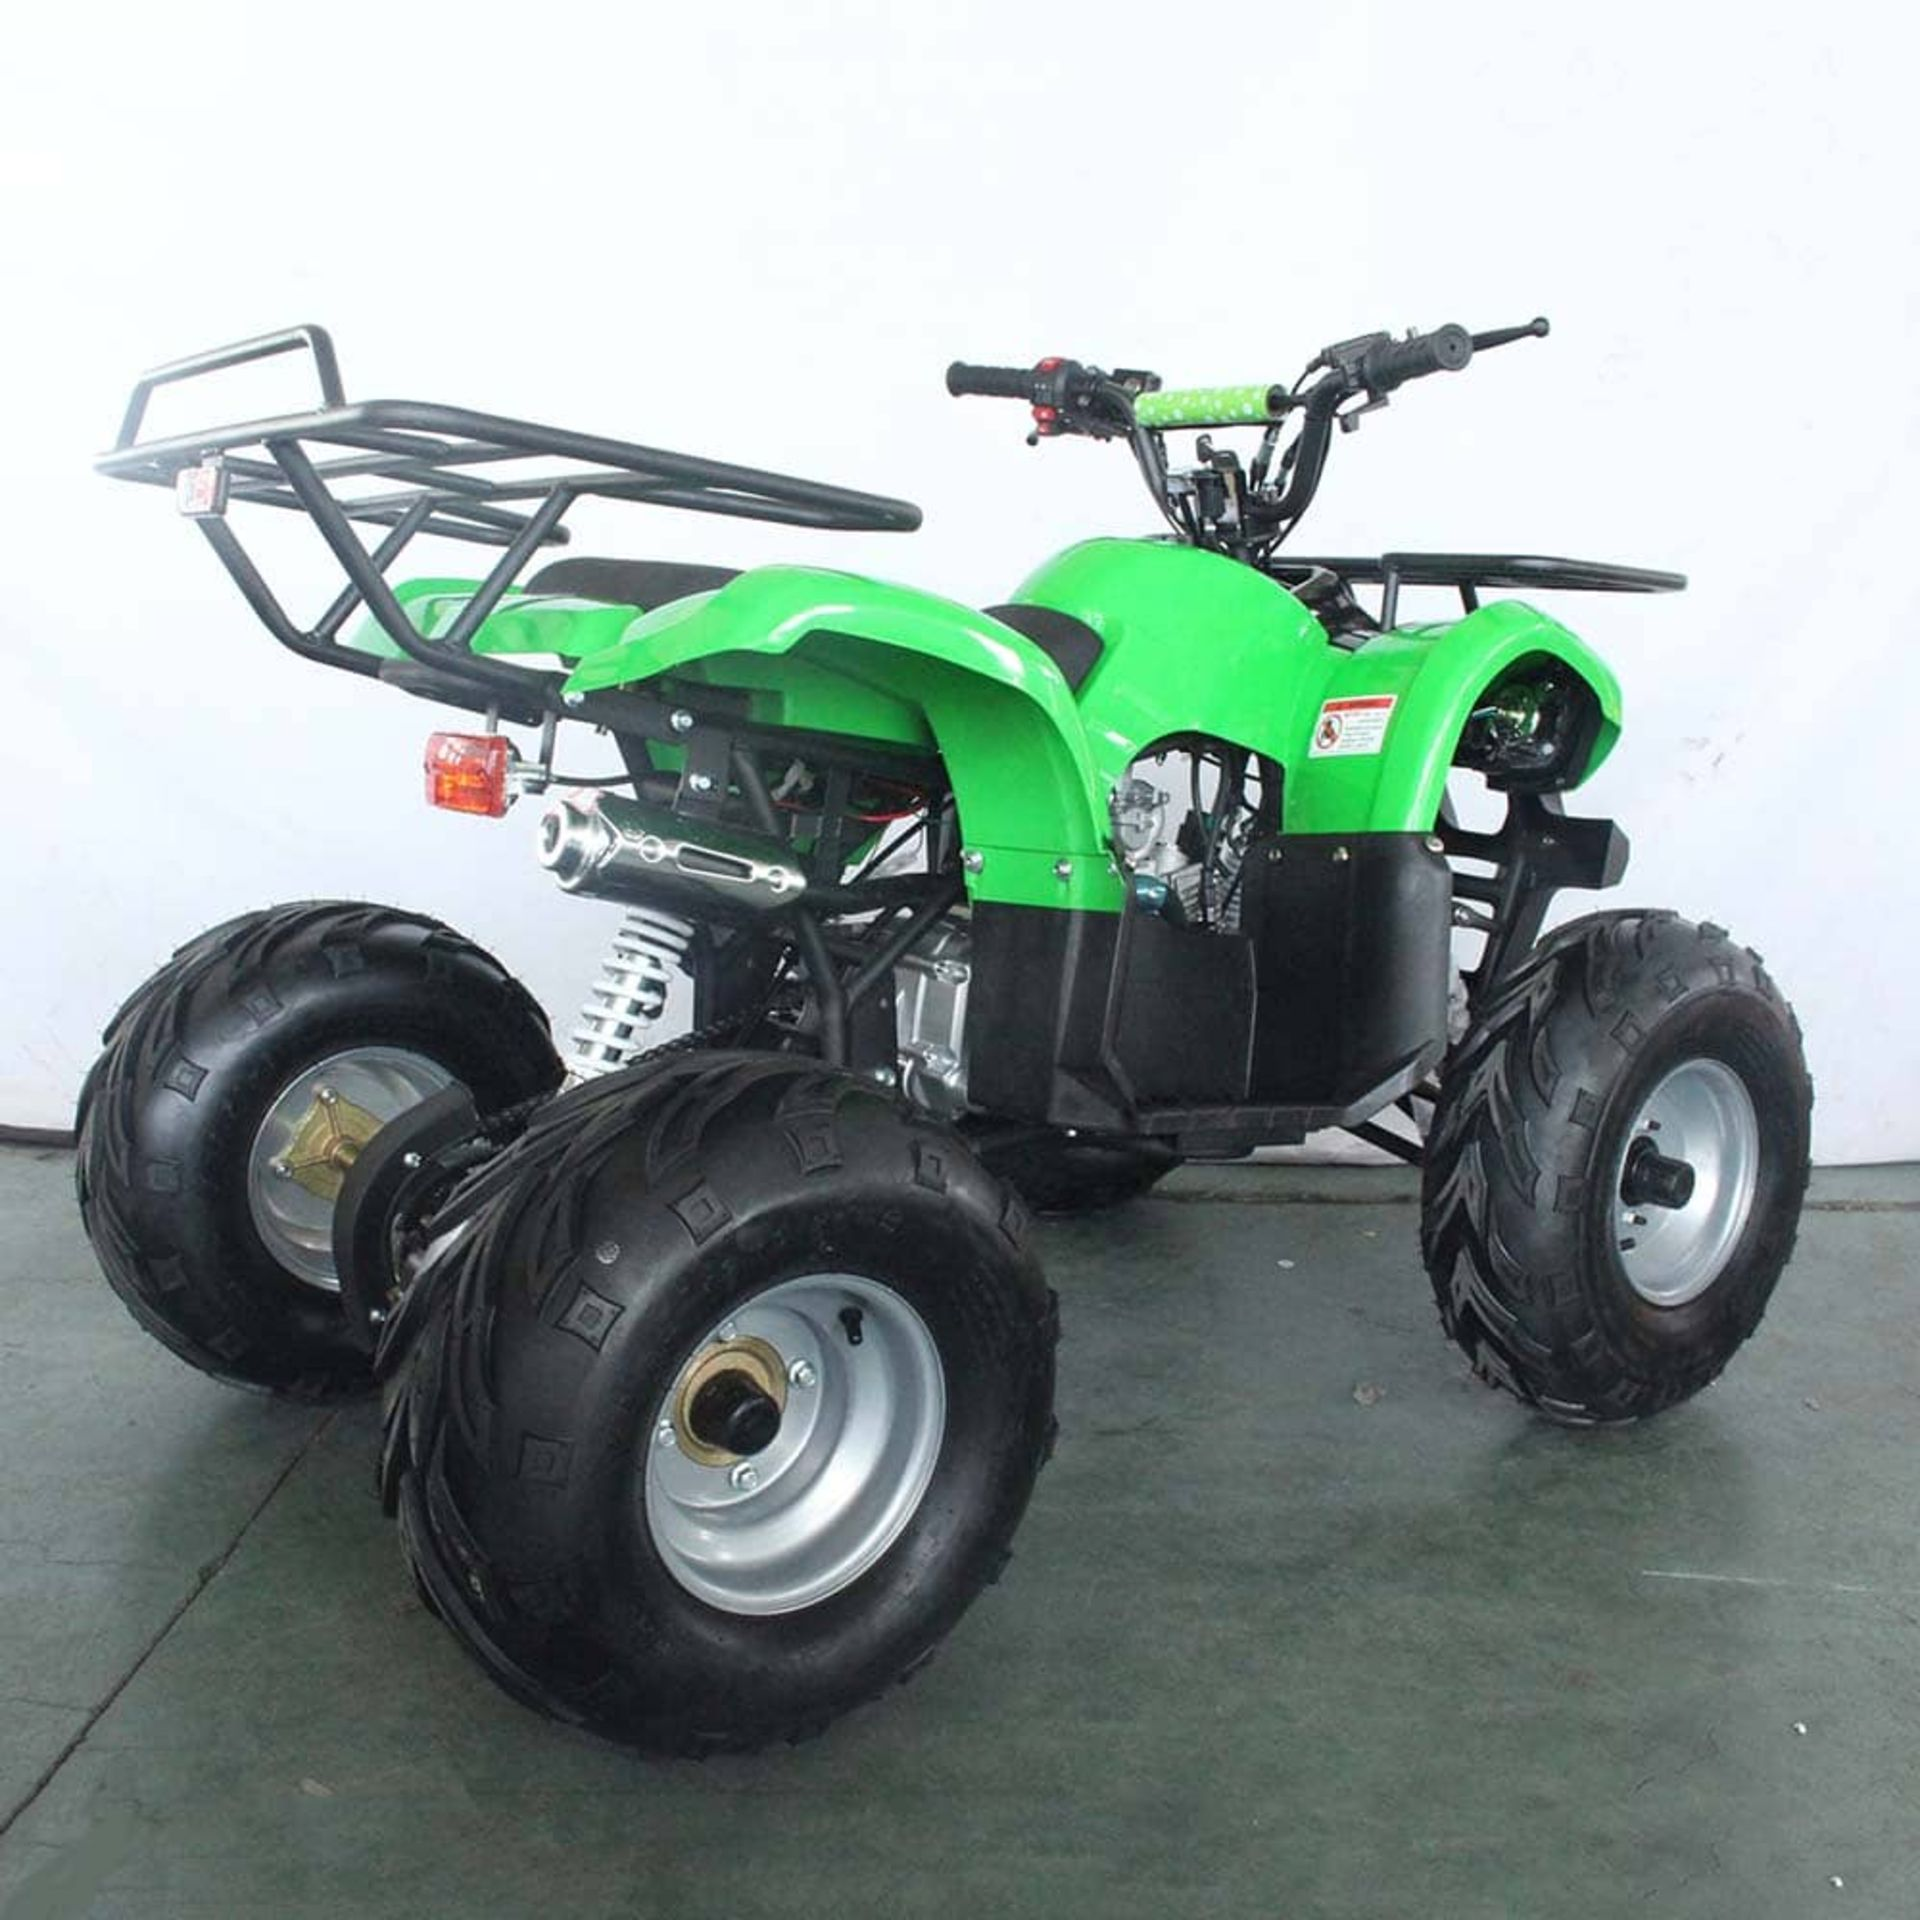 + VAT Brand New 125cc Condor Quad Bike - Four Stroke - Single Cylinder - Front Drum Brakes & Rear - Image 5 of 9